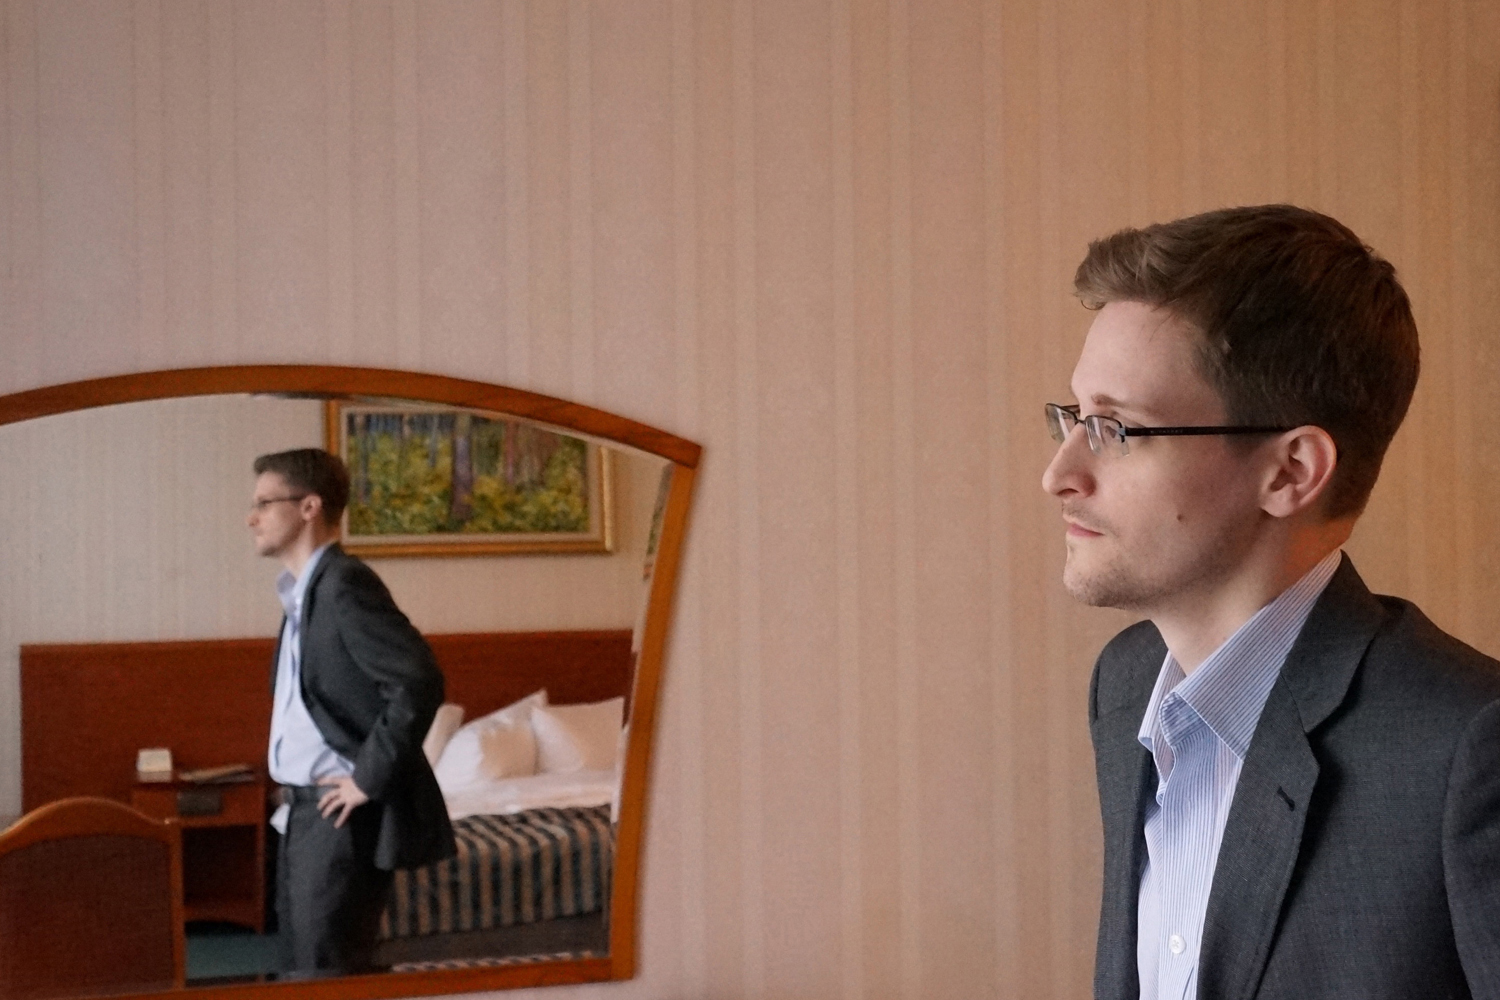 Former intelligence contractor Edward Snowden in an undisclosed location in Moscow, December 2013.